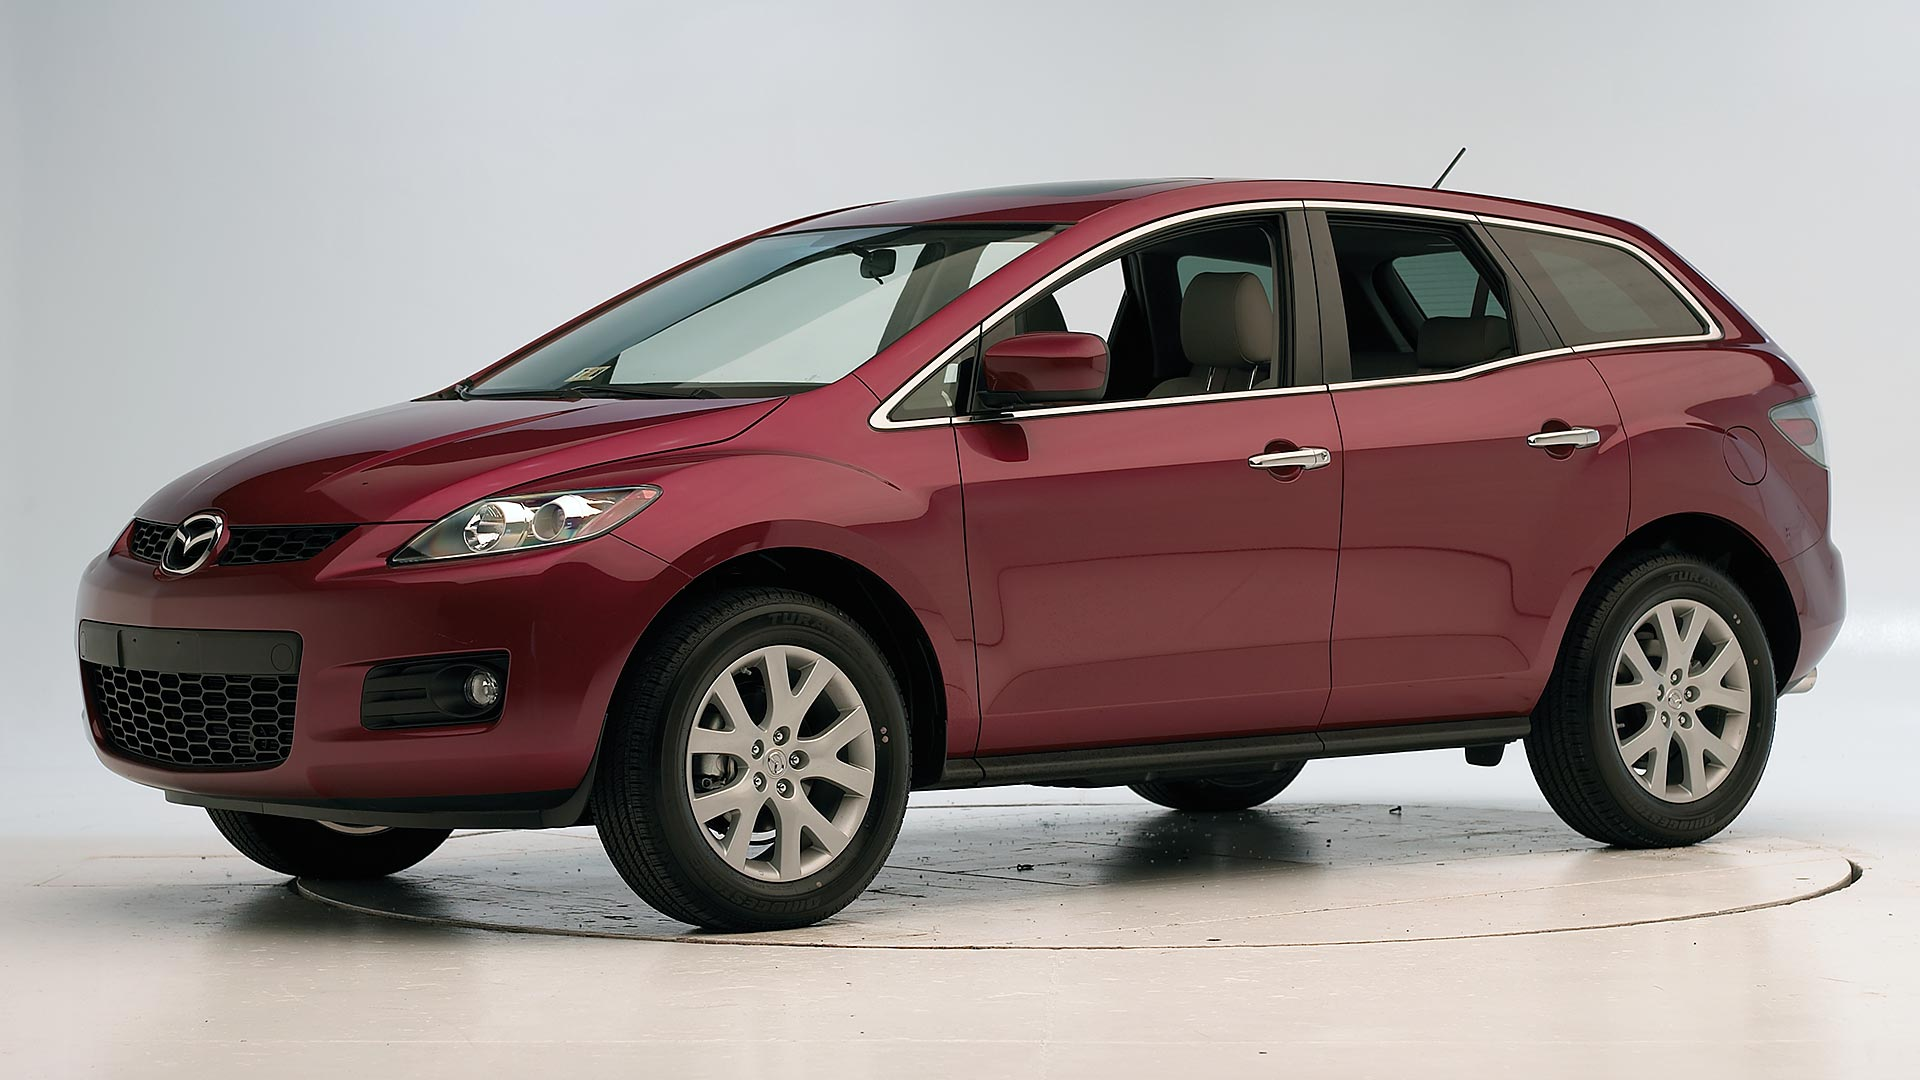 2010 Mazda CX-7 4-door SUV